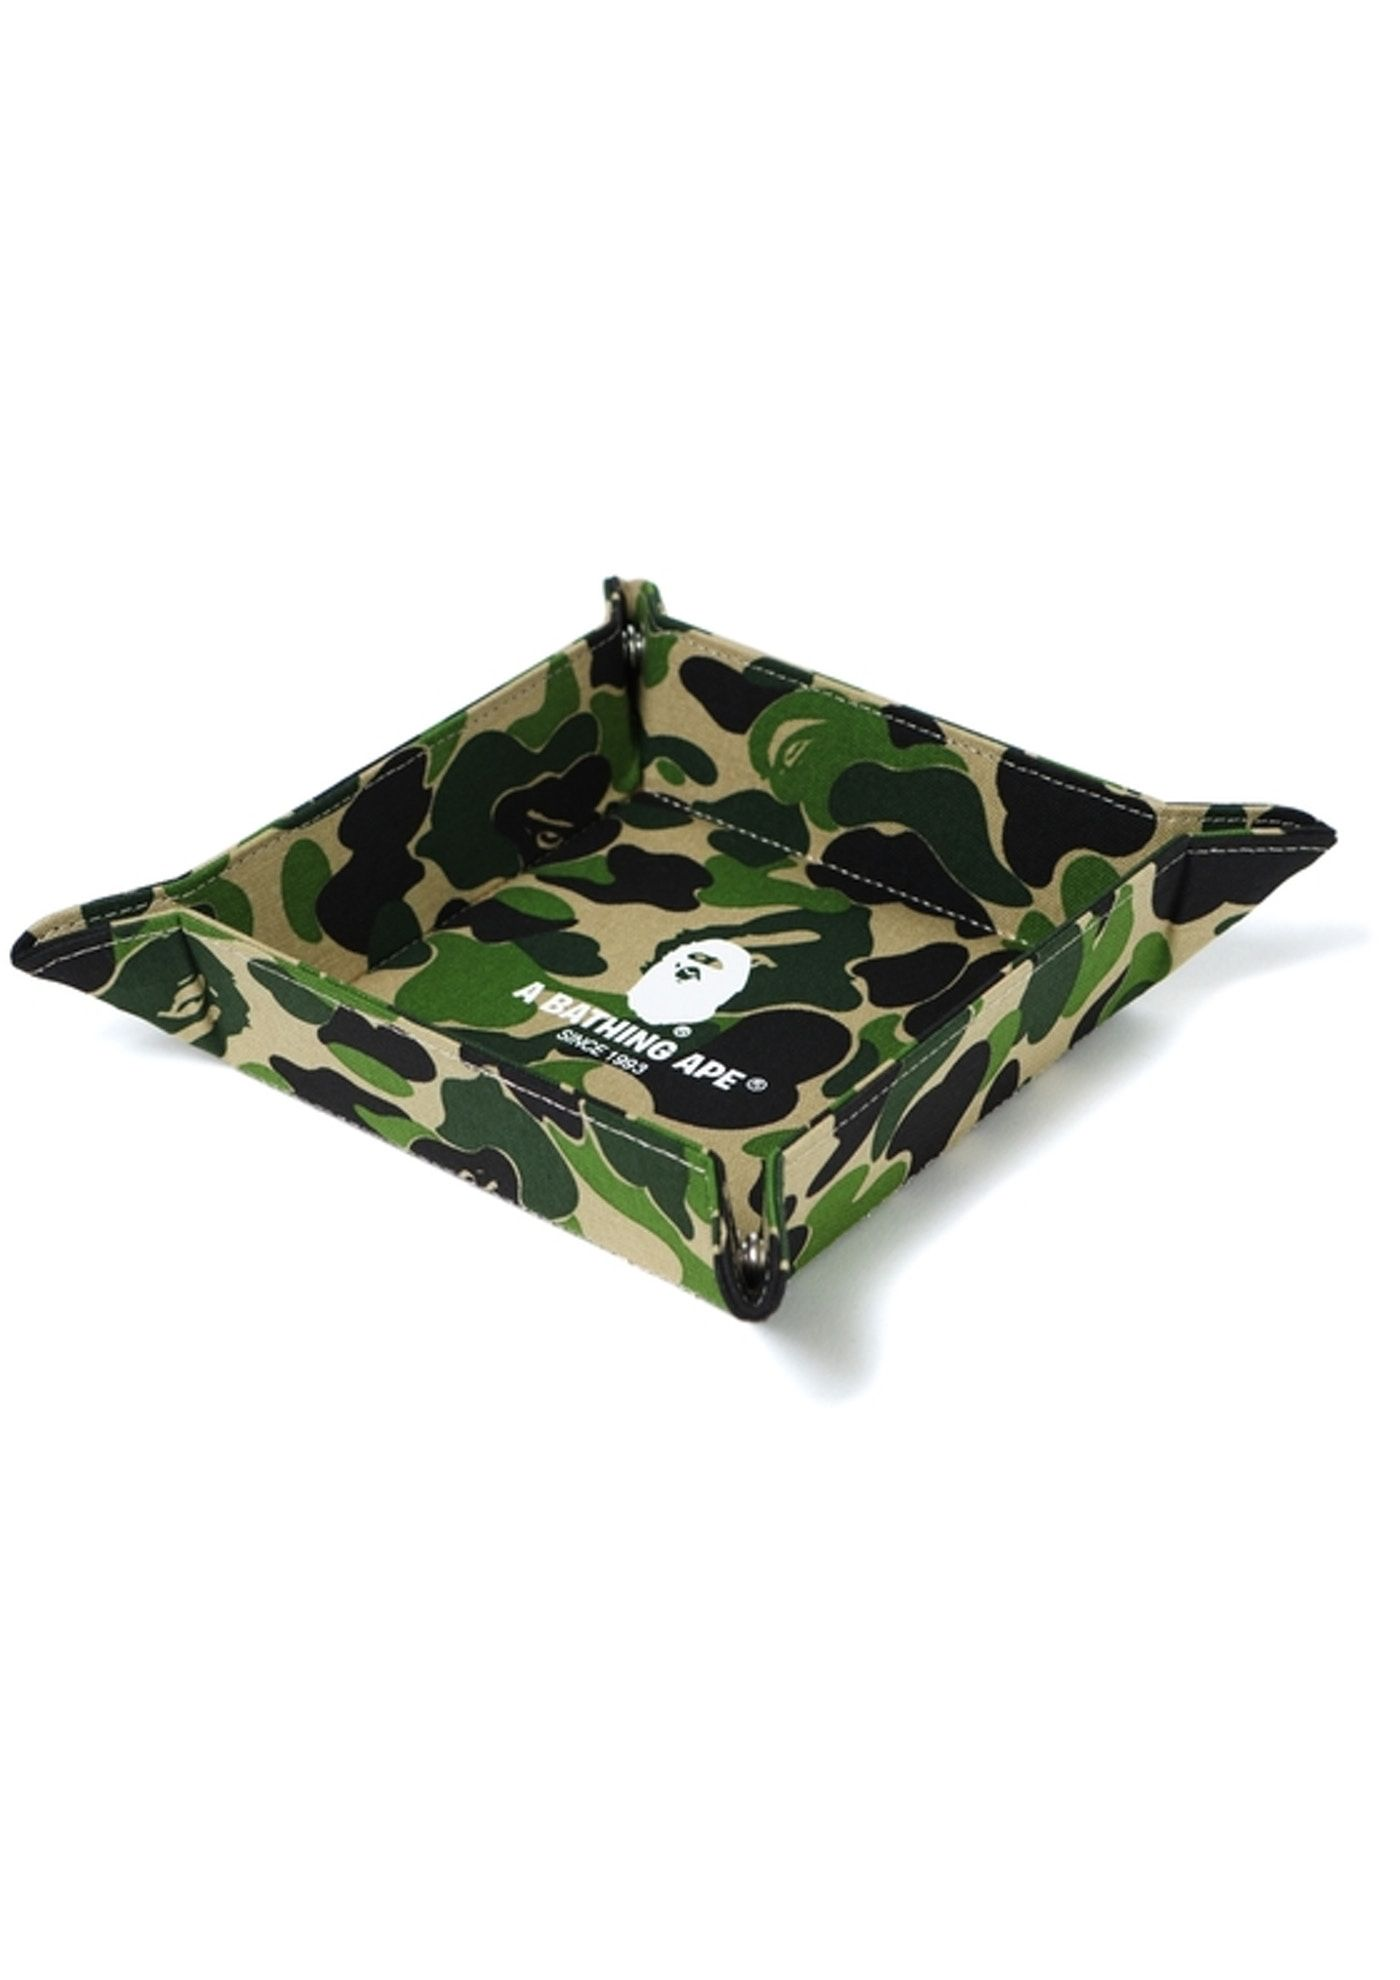 6f30cdb9 Check out the Bape ABC Tray (L) Green Camo available on StockX ...